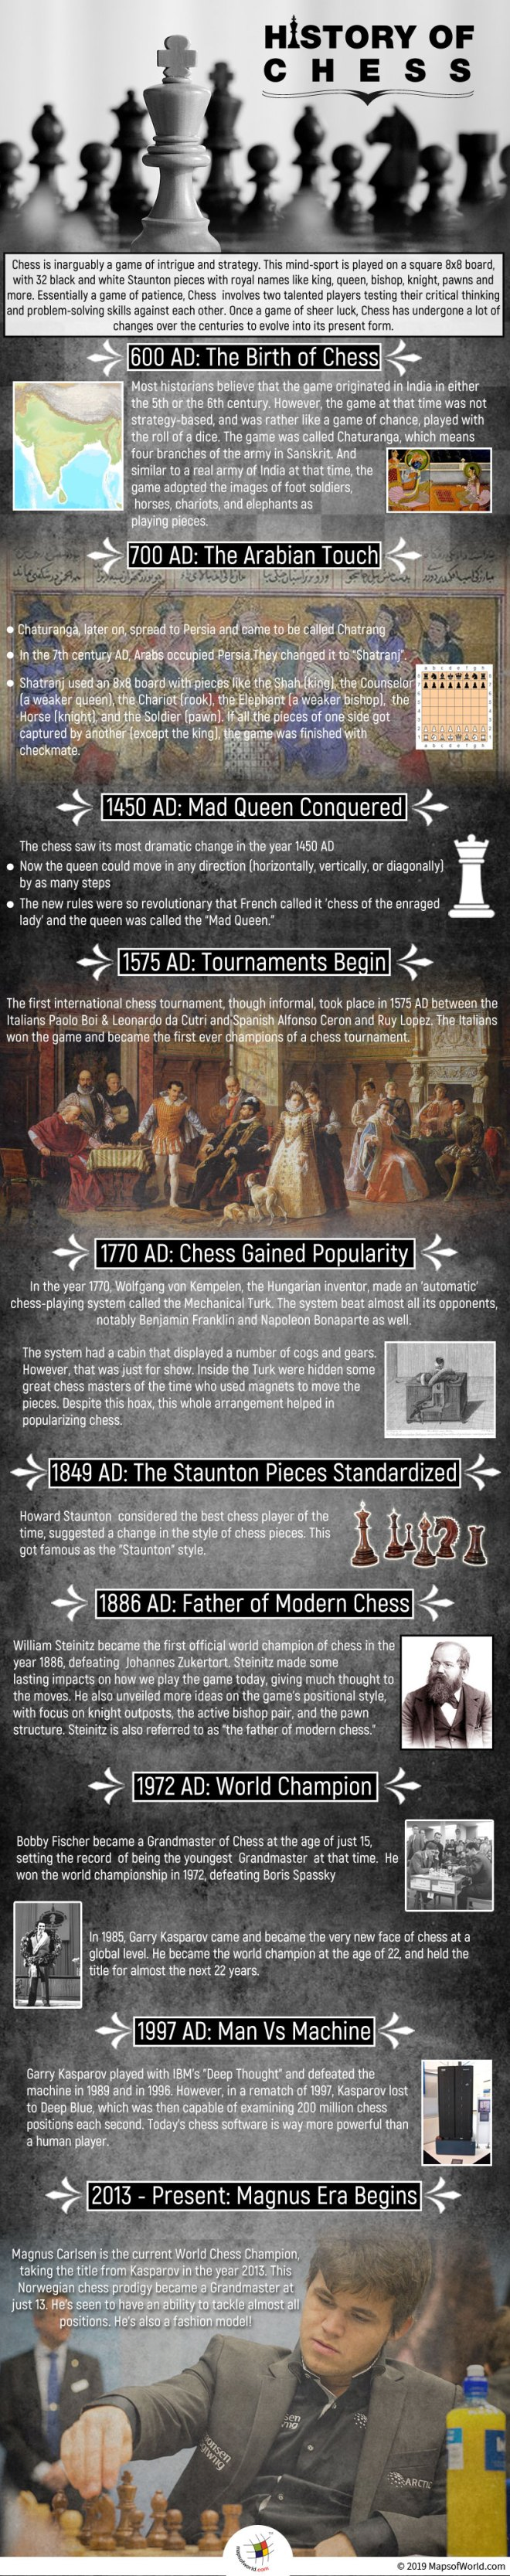 Infographic Showing The History of Chess